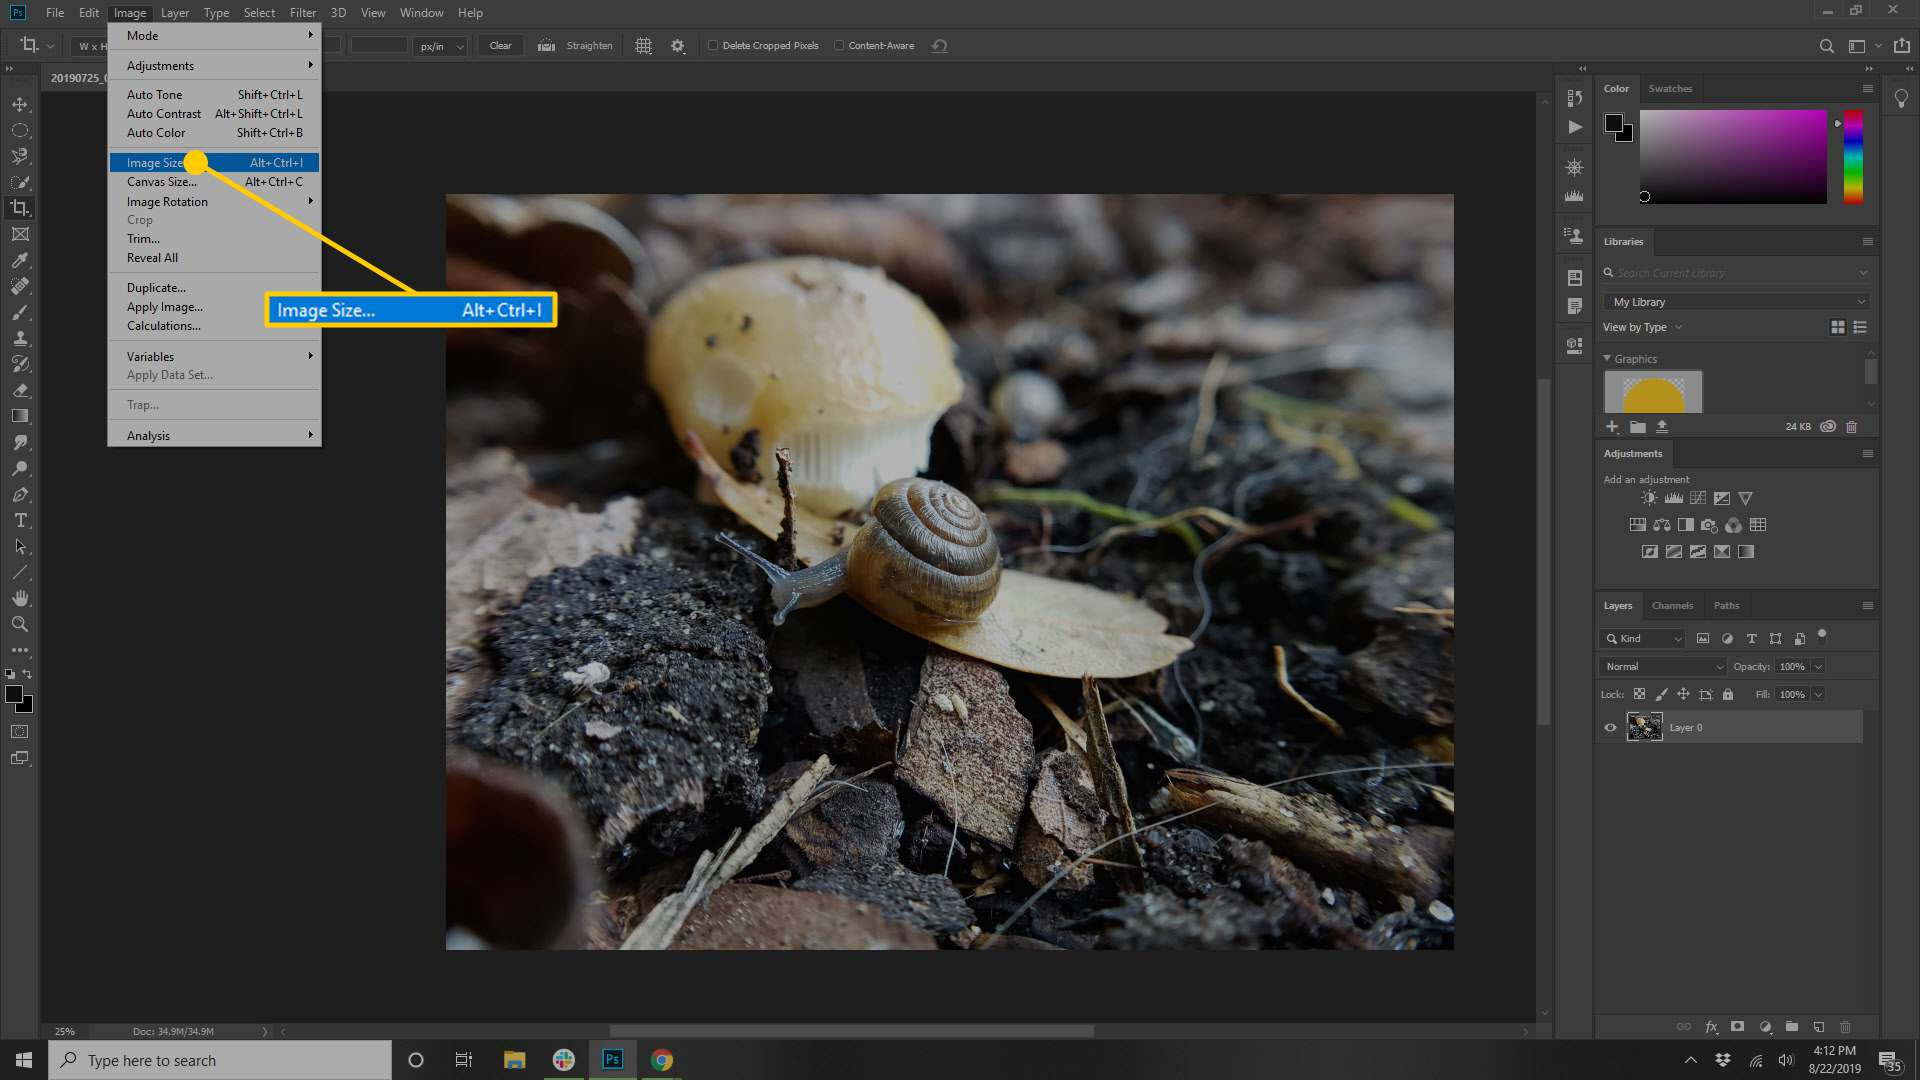 The Image Size option in Photoshop.